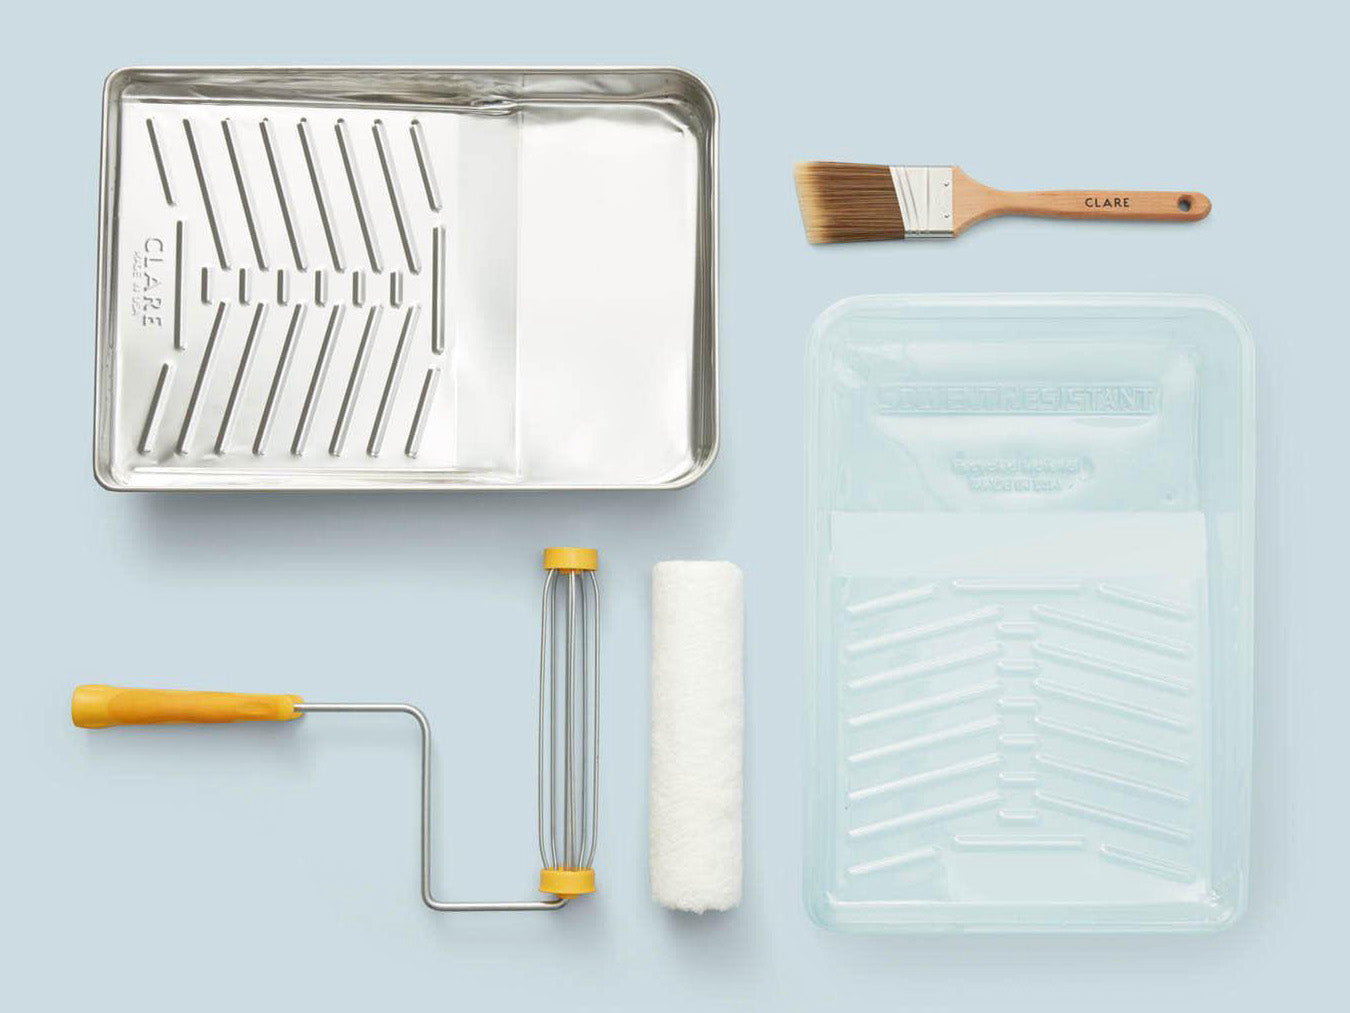 A full list of essential paint supplies you need to paint a room like a pro, this essential paint kit will help you achieve flawless results.